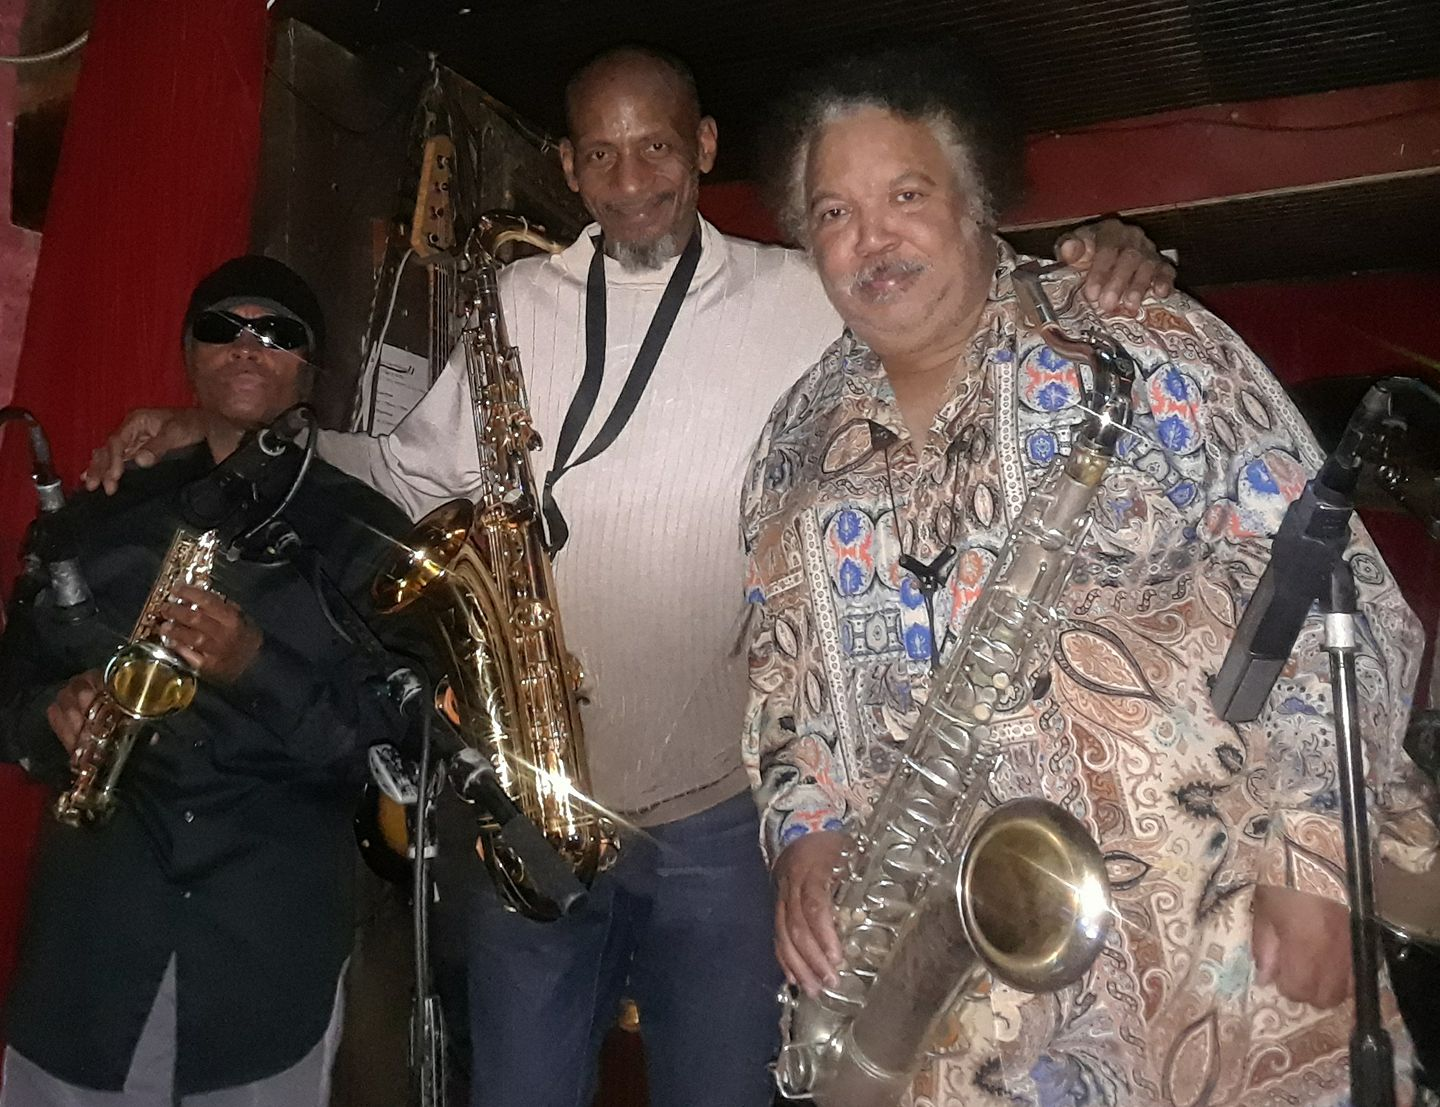 Johnny Long playing Tenor/Soprano Sax with Ron Holloway(Tenor Sax) and Walter Tate (Tenor Sax) at Madams Organ in Washington, DC